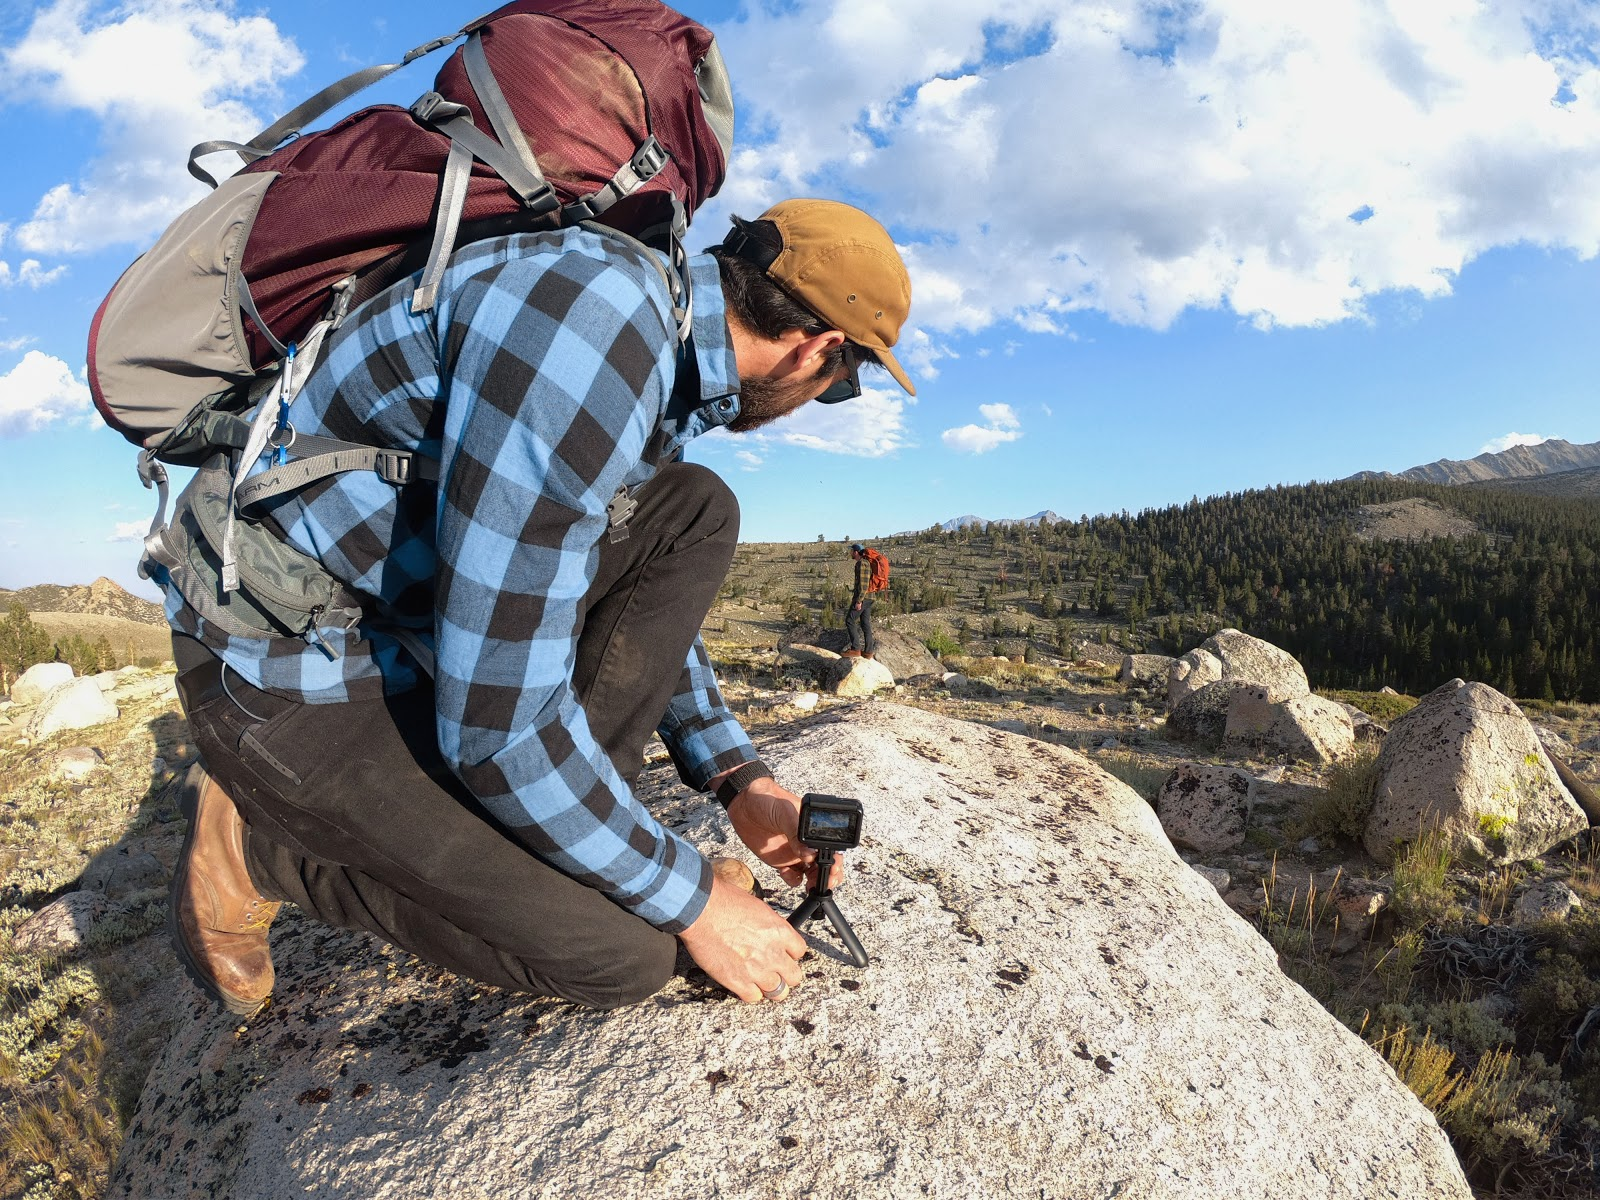 man setting up gopro on a rocky hill